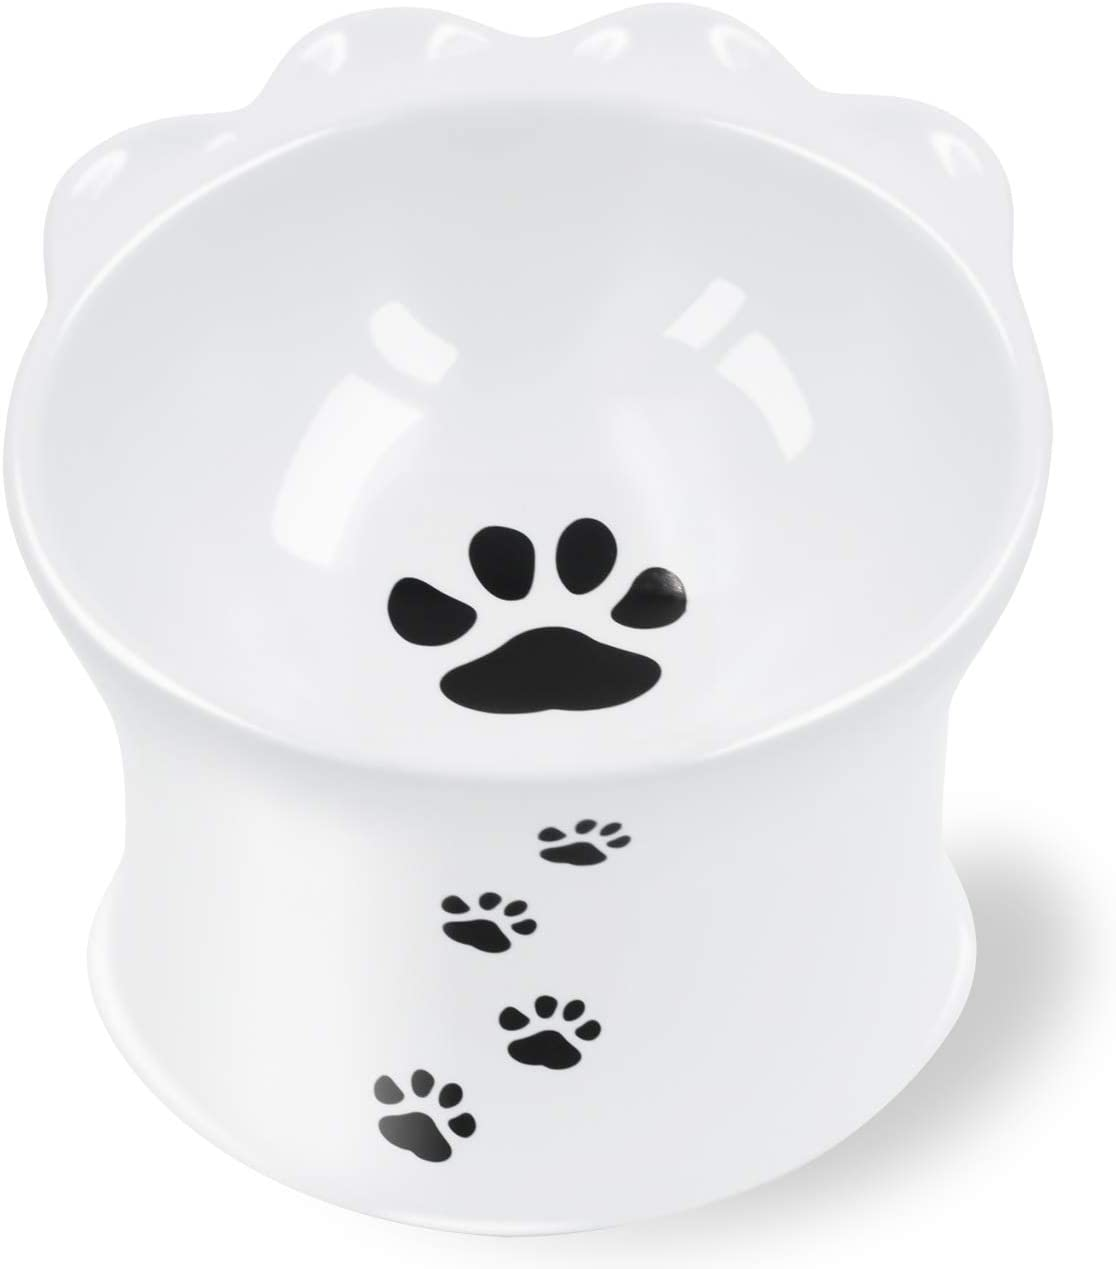 Frewinky Cat Bowl,Ceramic Cat Bowls Anti Vomiting,Raised Cat Food Bowl for Flat Cats and Small Dogs,Tilted Elevated Cat-Bowl Protect Pet's Spine,No Whisker Fatigue